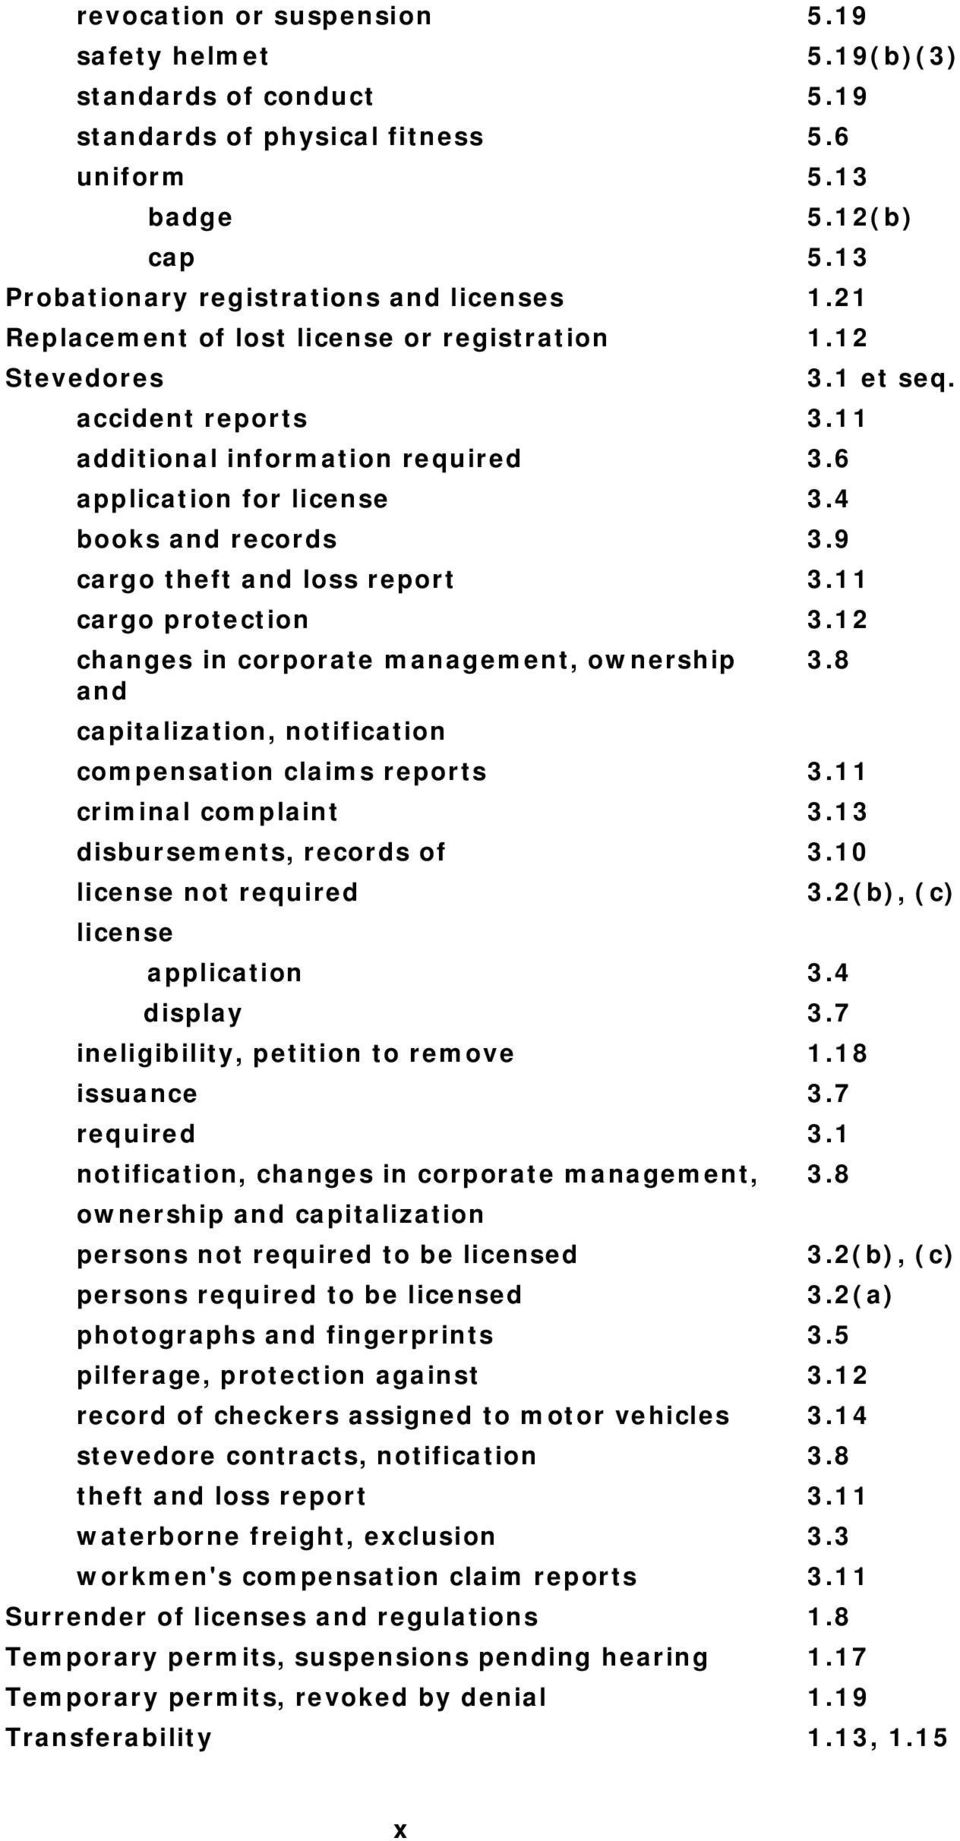 9 cargo theft and loss report 3.11 cargo protection 3.12 changes in corporate management, ownership 3.8 and capitalization, notification compensation claims reports 3.11 criminal complaint 3.